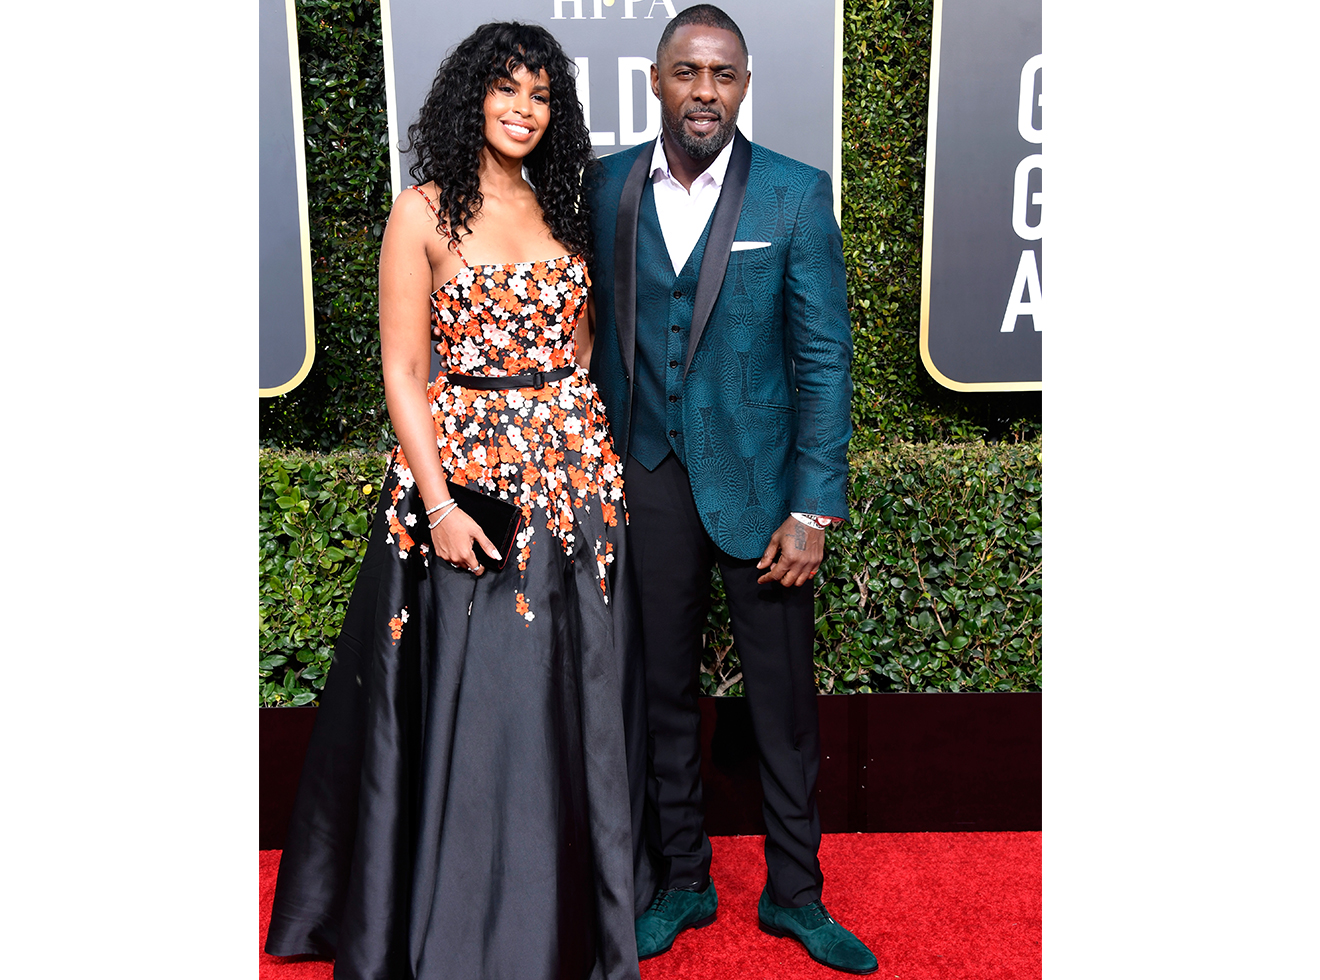 Idris Elba attend the 76th Annual Golden Globe Awards at The Beverly Hilton Hotel on January 6, 2019 in Beverly Hills, California.